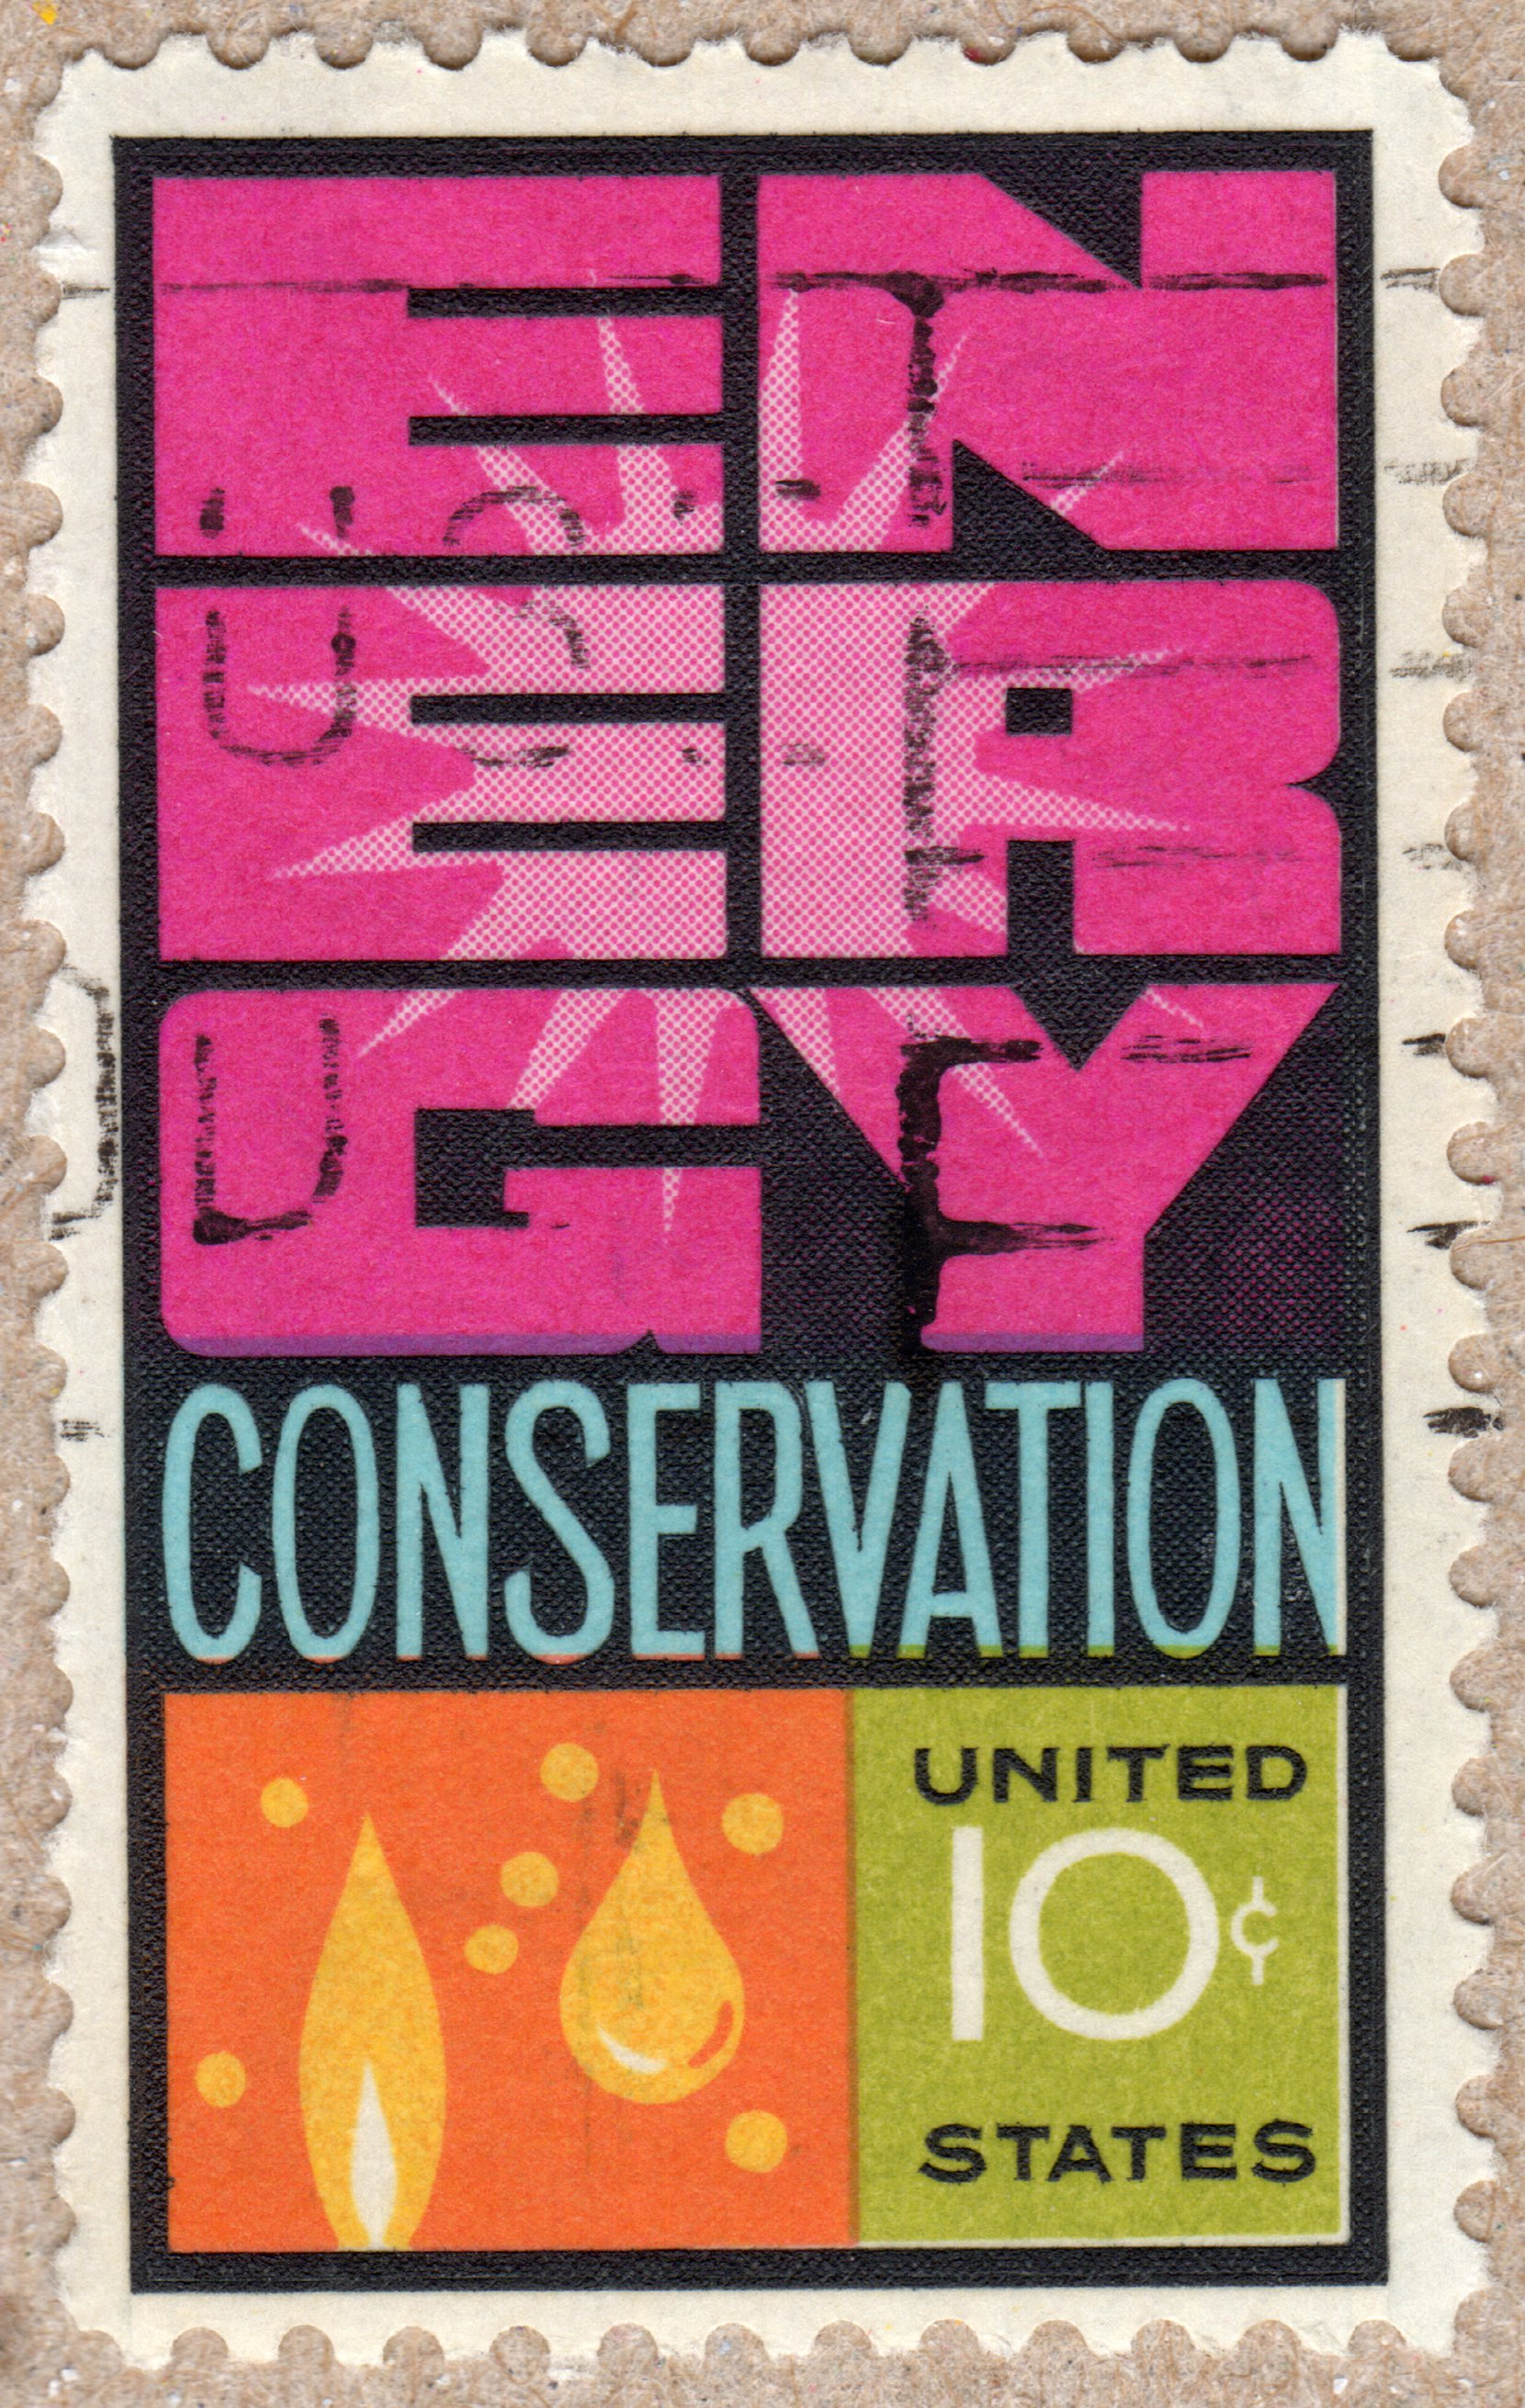 energy conservation 10¢ u.s. postage stamp philately postage stamps